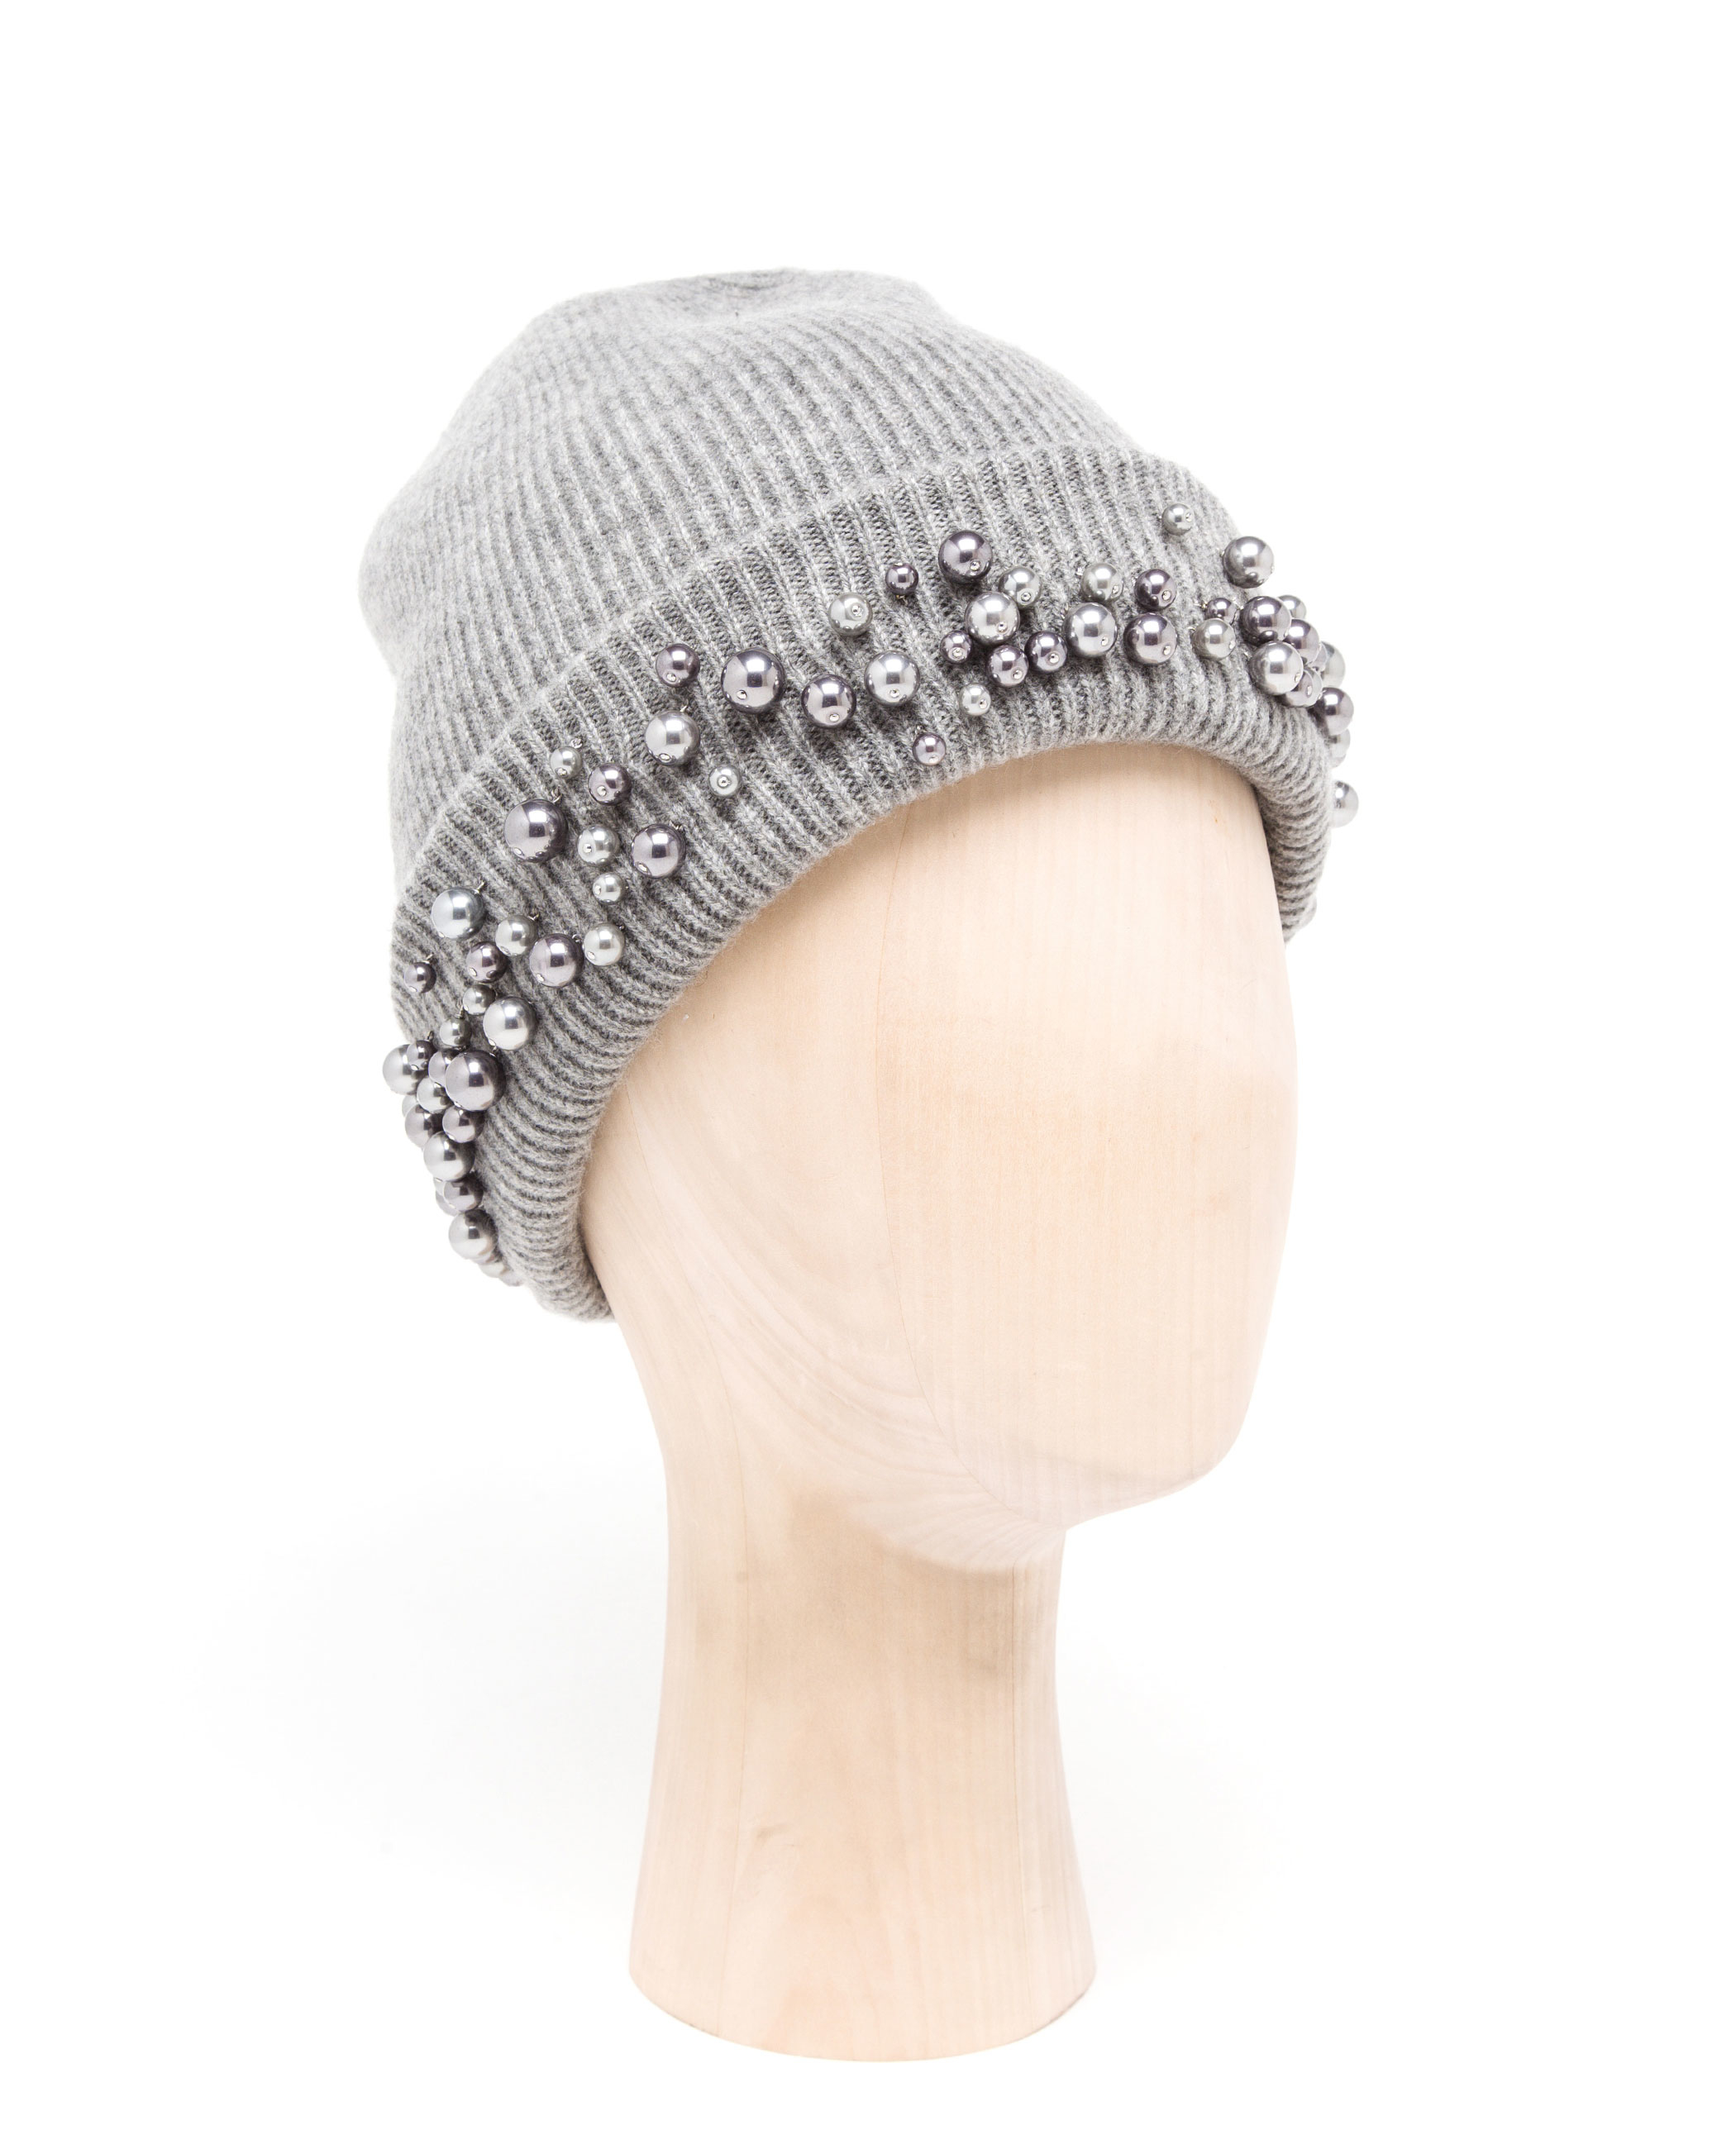 Maison Michel Pearl Embellished Beanie Hat in Black - Lyst 7e56b6e1be9